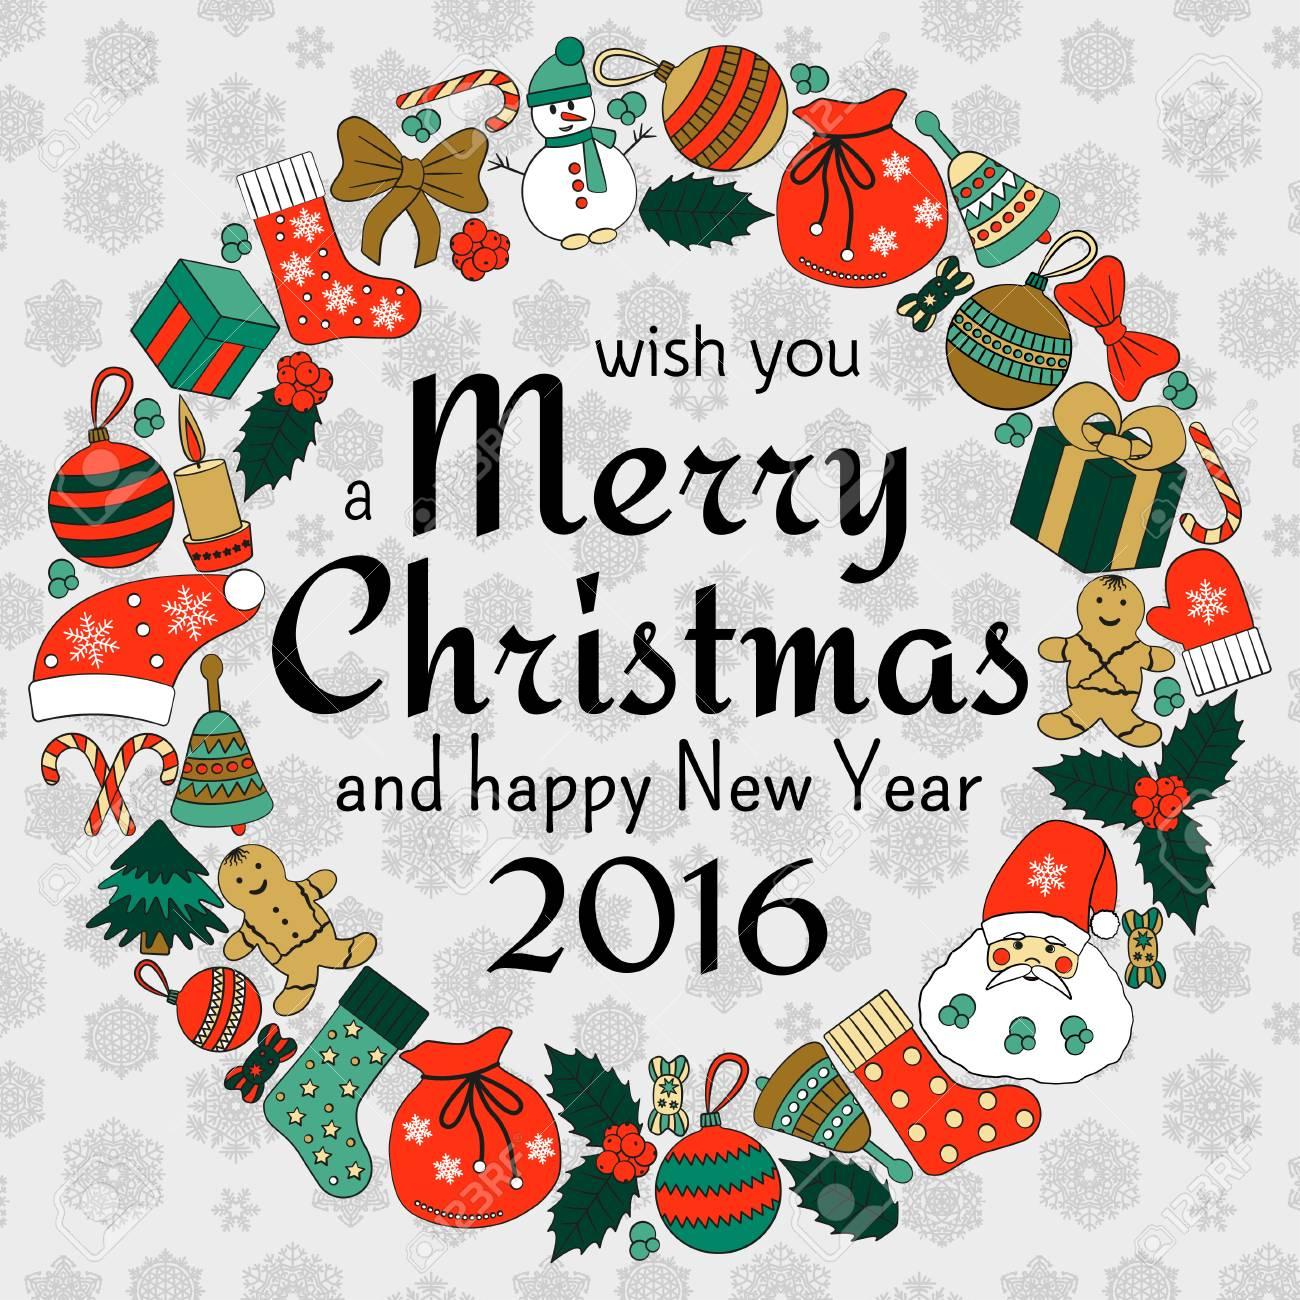 Christmas Greeting Card With Text Wish You A Merry Christmas